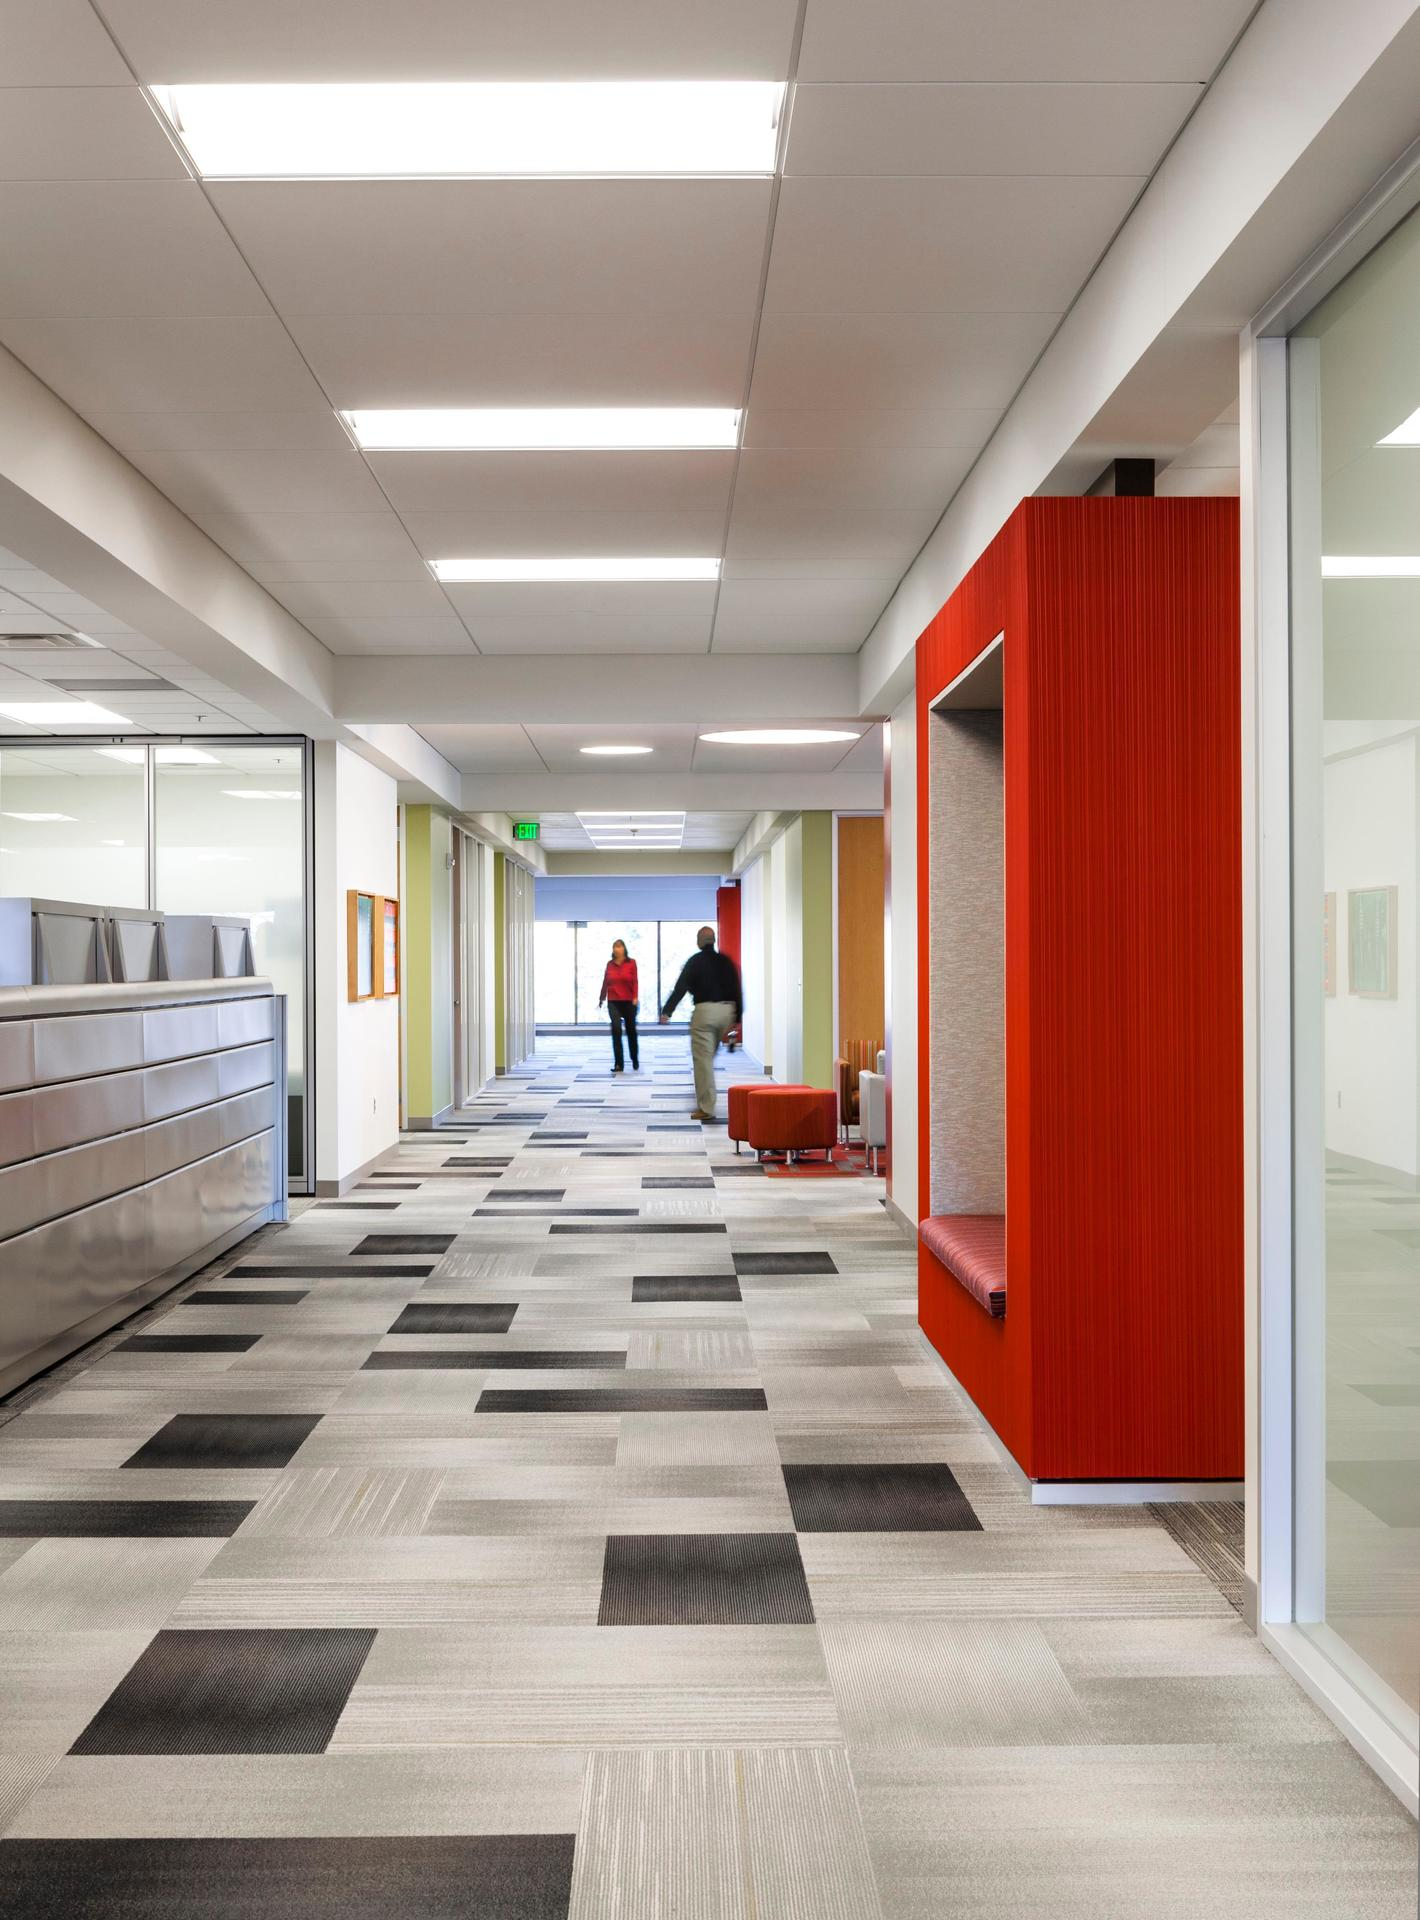 The large office hallway at CPG Corporate office in Shoreview, Minnesota, by HCM Architects.